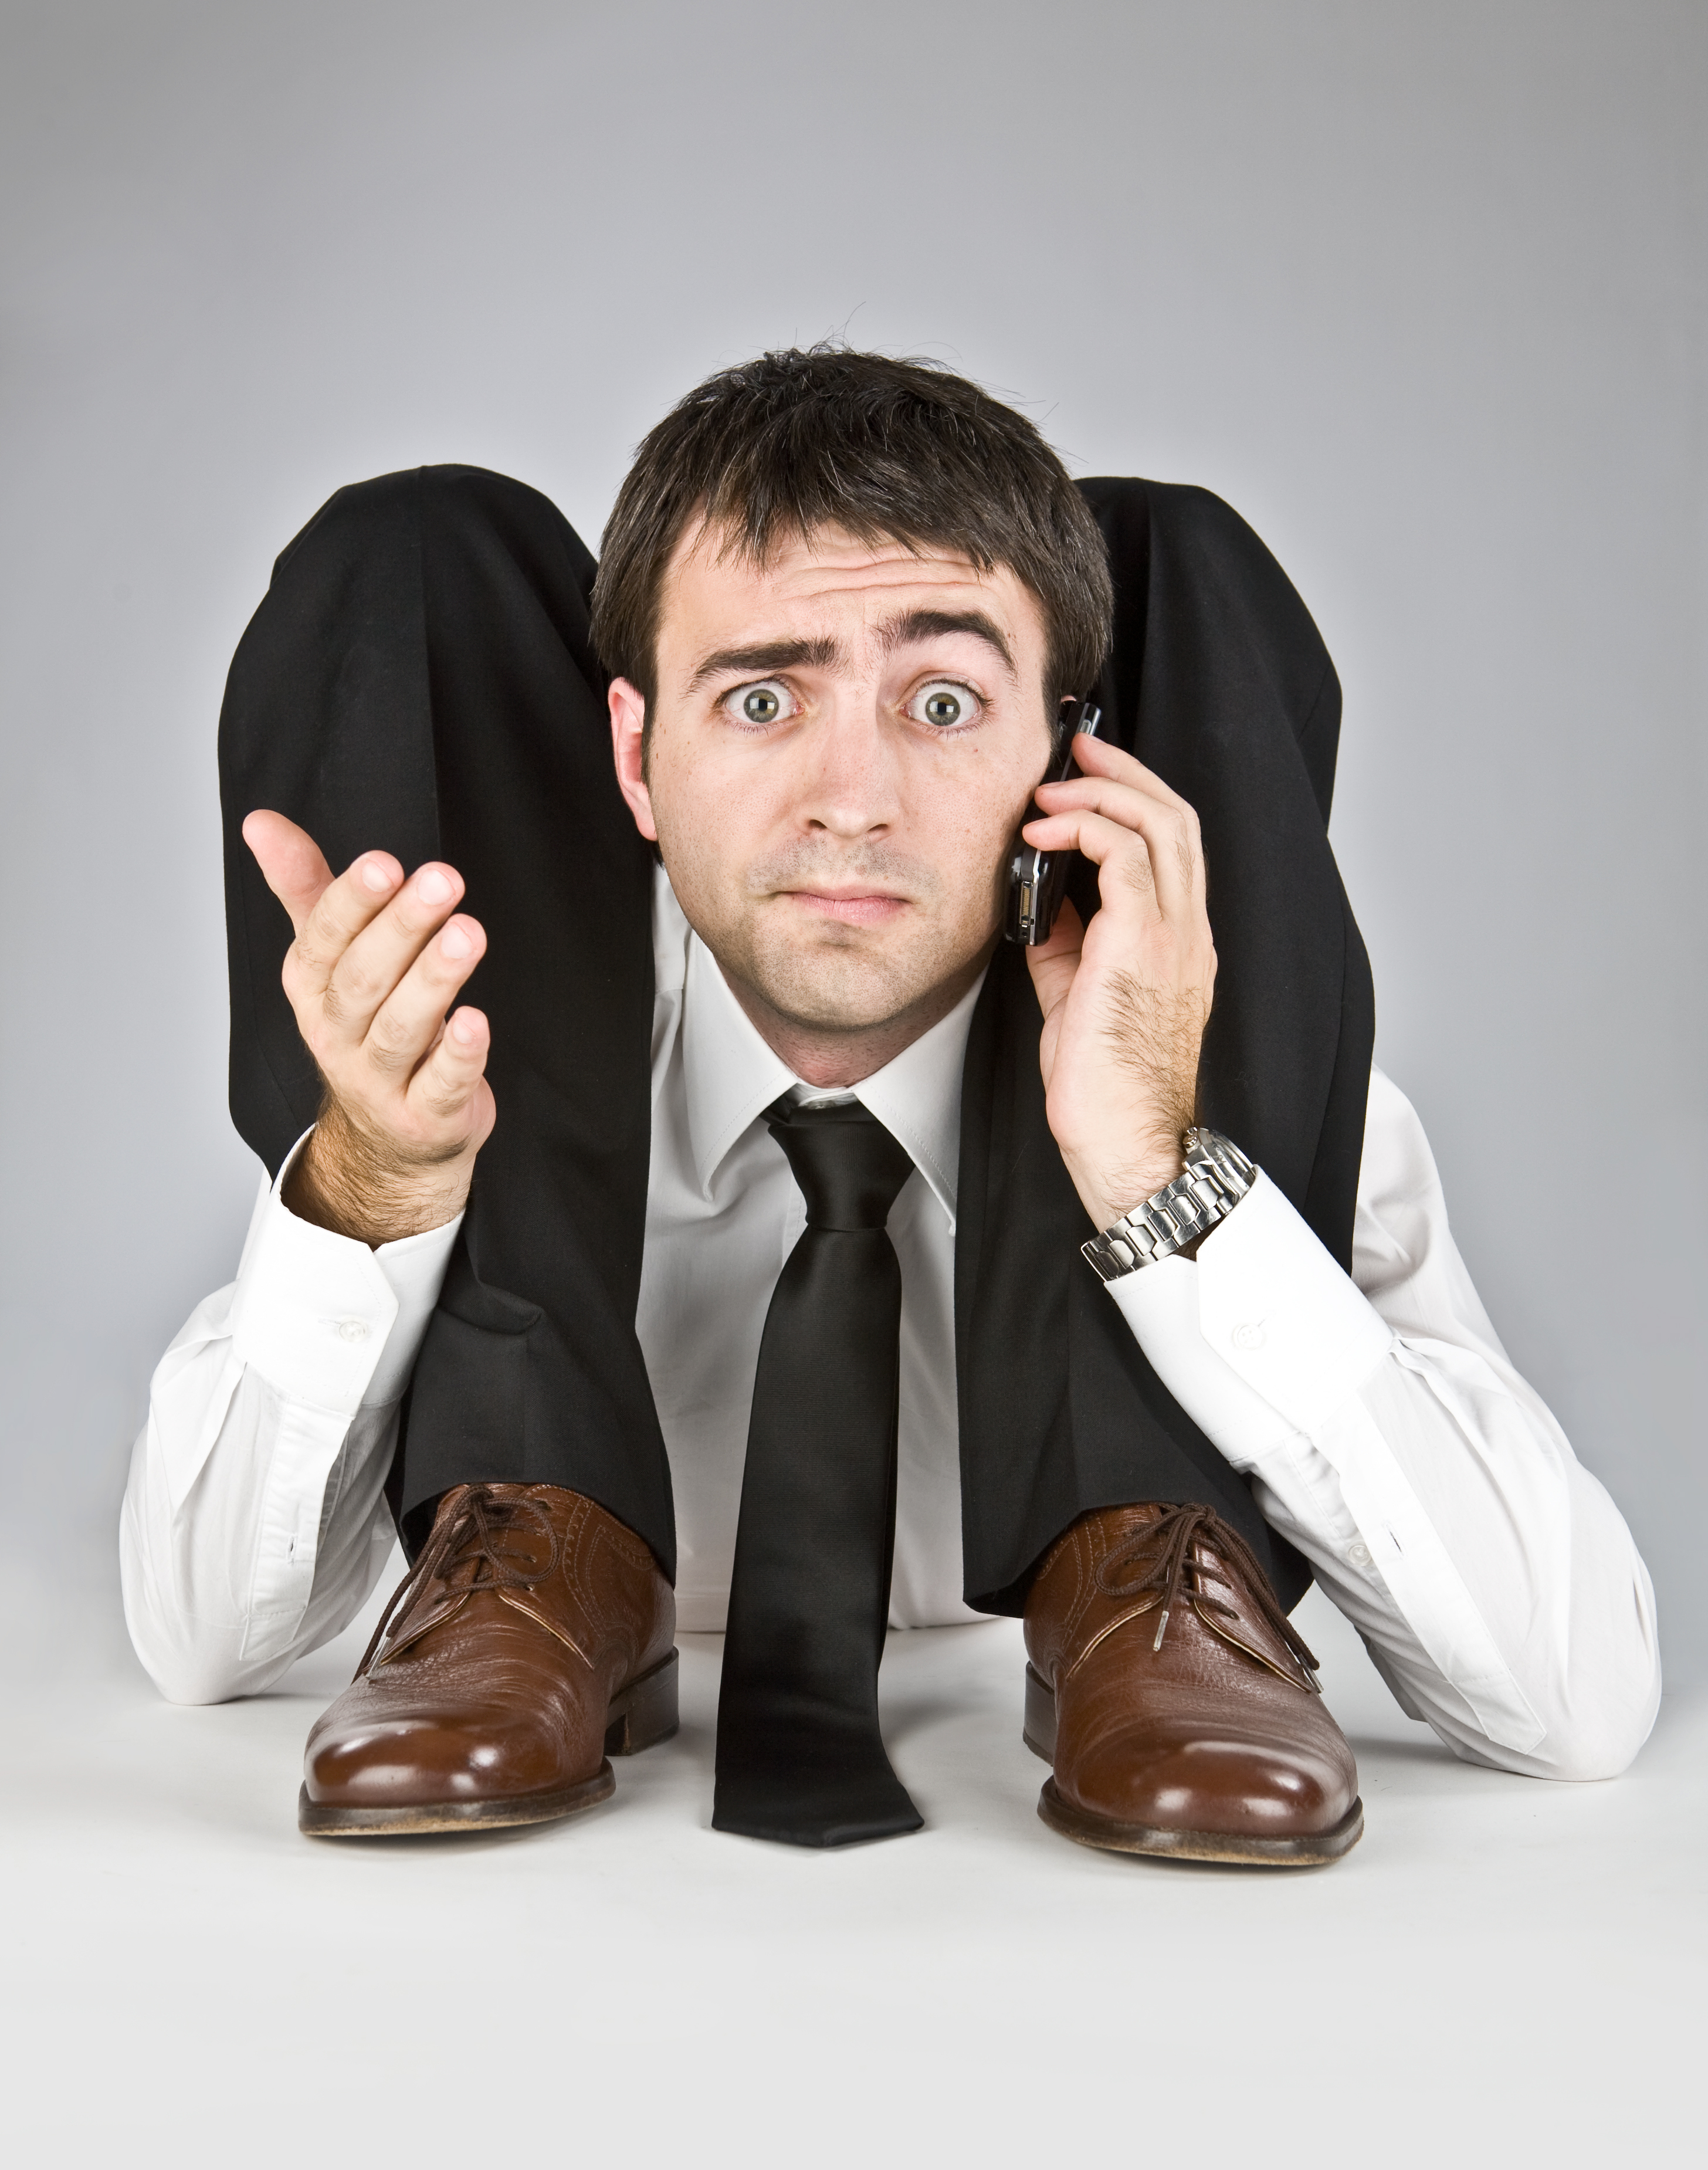 contortion business manager telephones for work